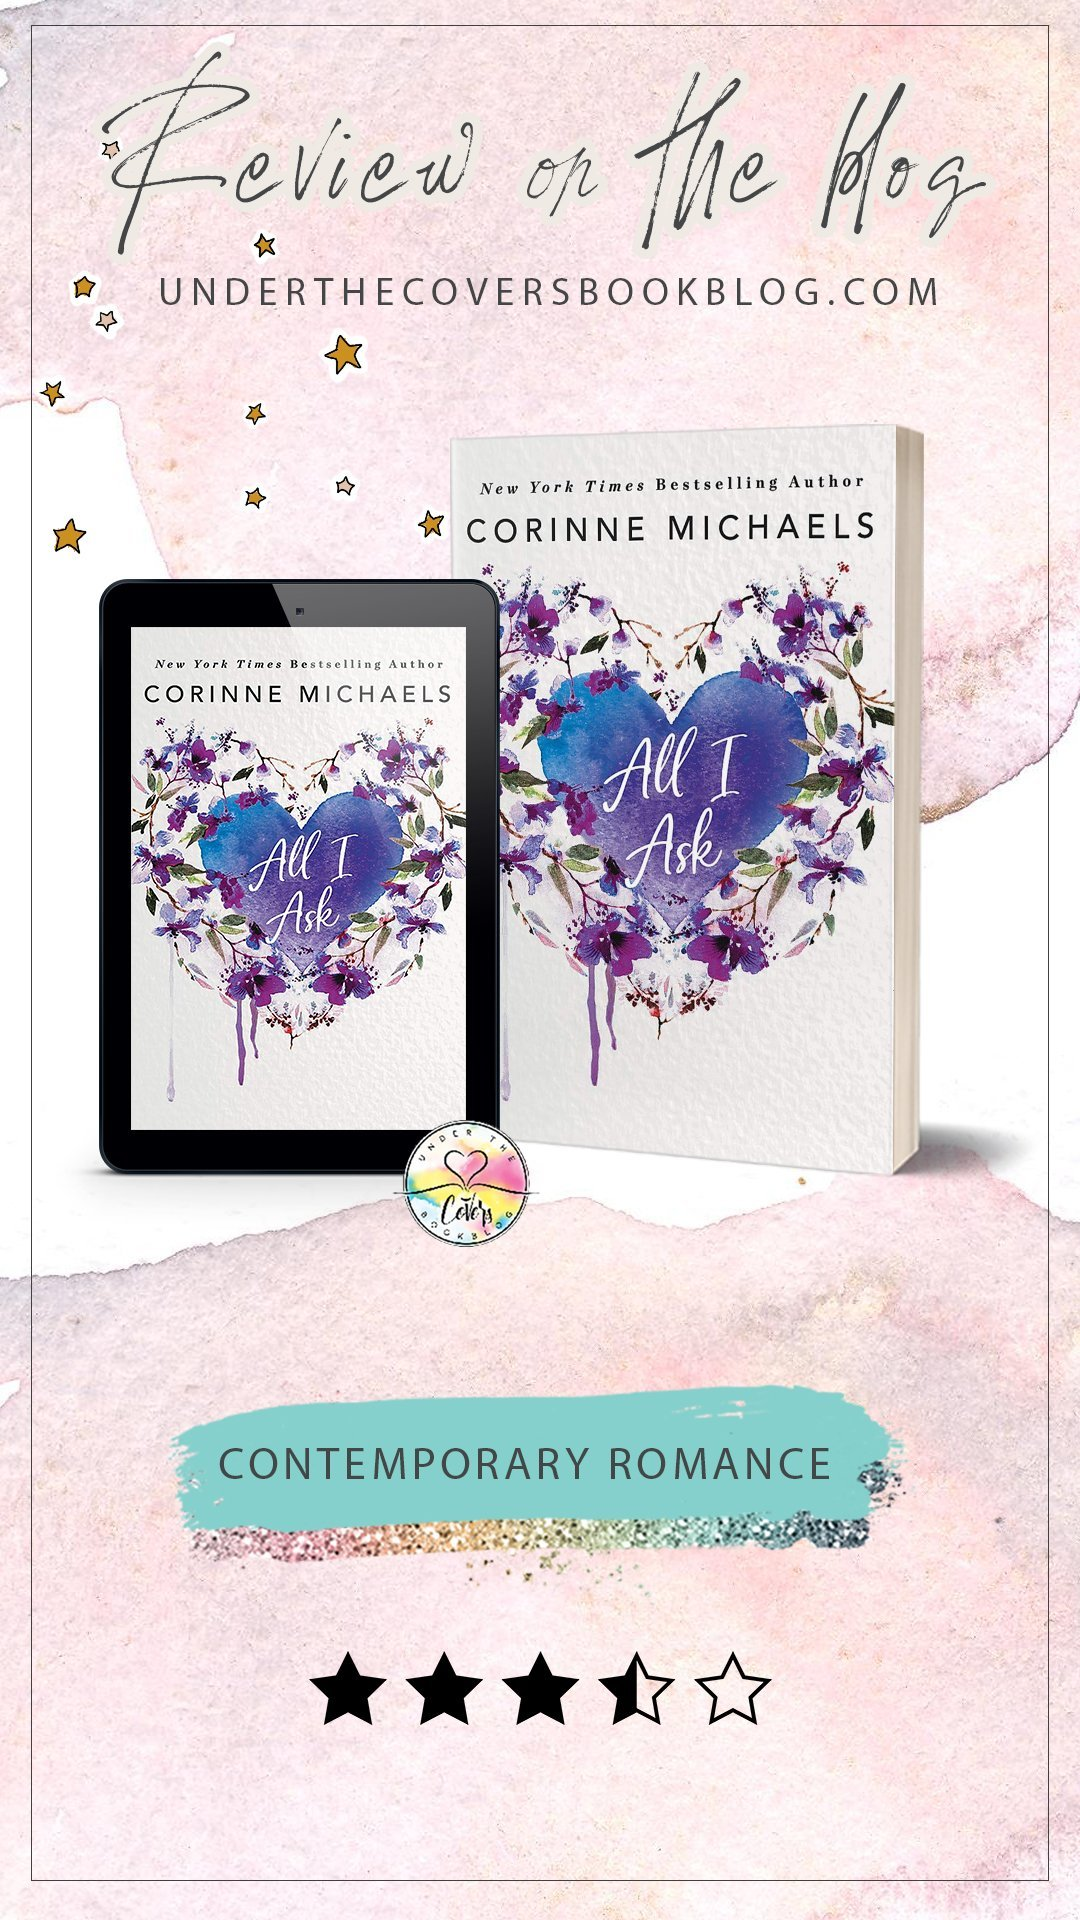 ARC Review: All I Ask by Corinne Michaels